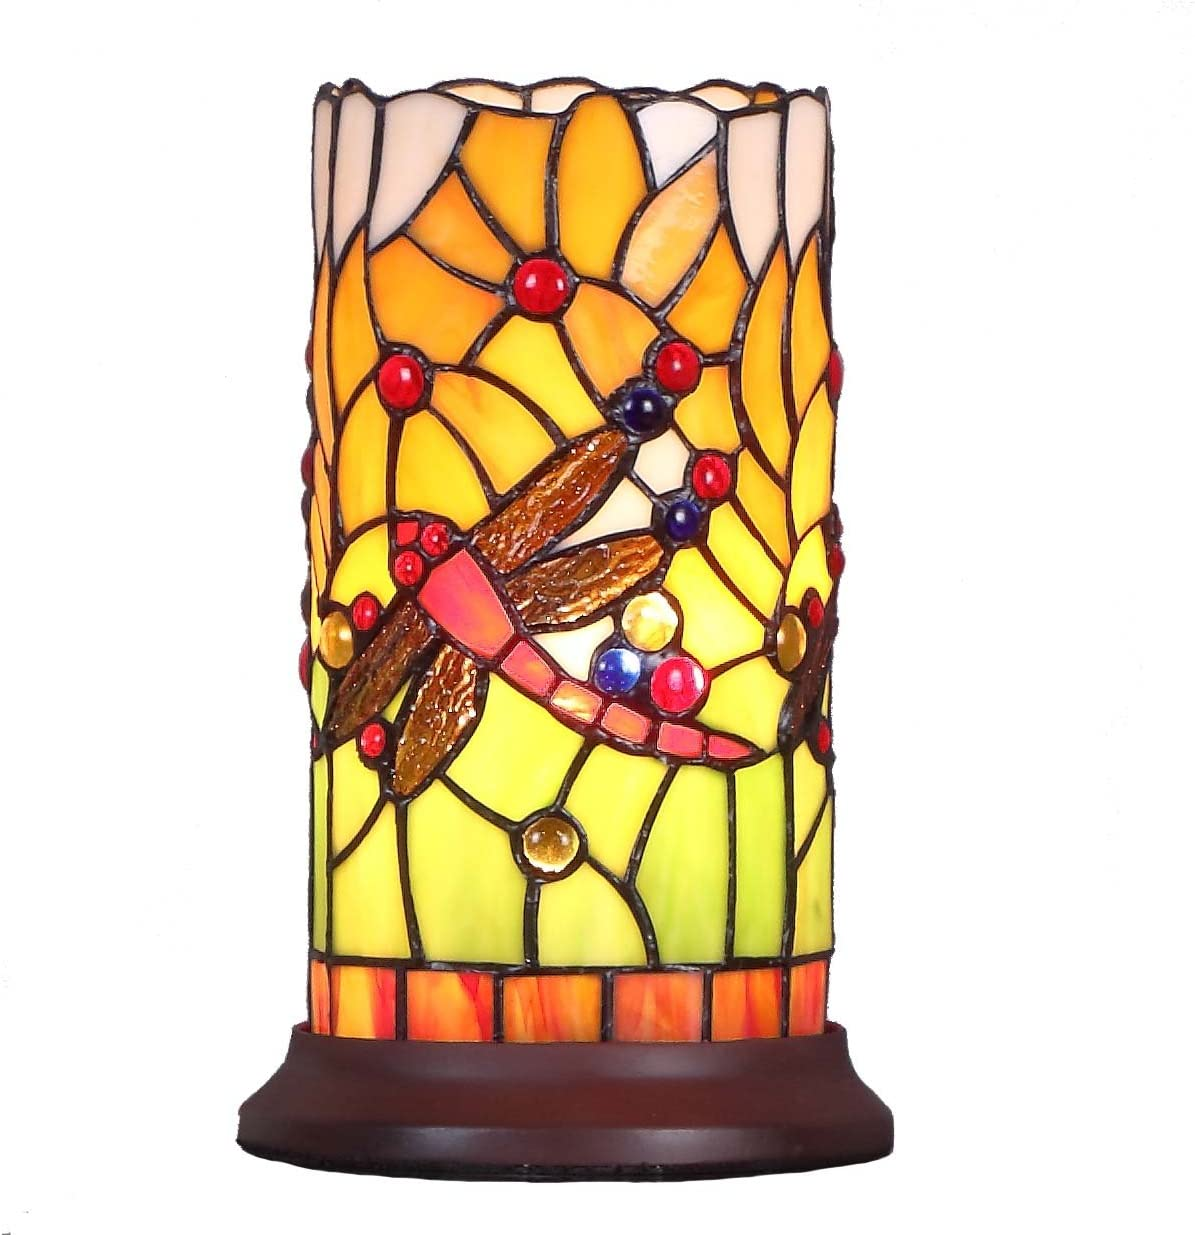 Bieye L10650 Dragonfly Tiffany Style Stained Glass Mini Table Lamp With Cylindrical Shade 10 Inch Tall Home Improvement